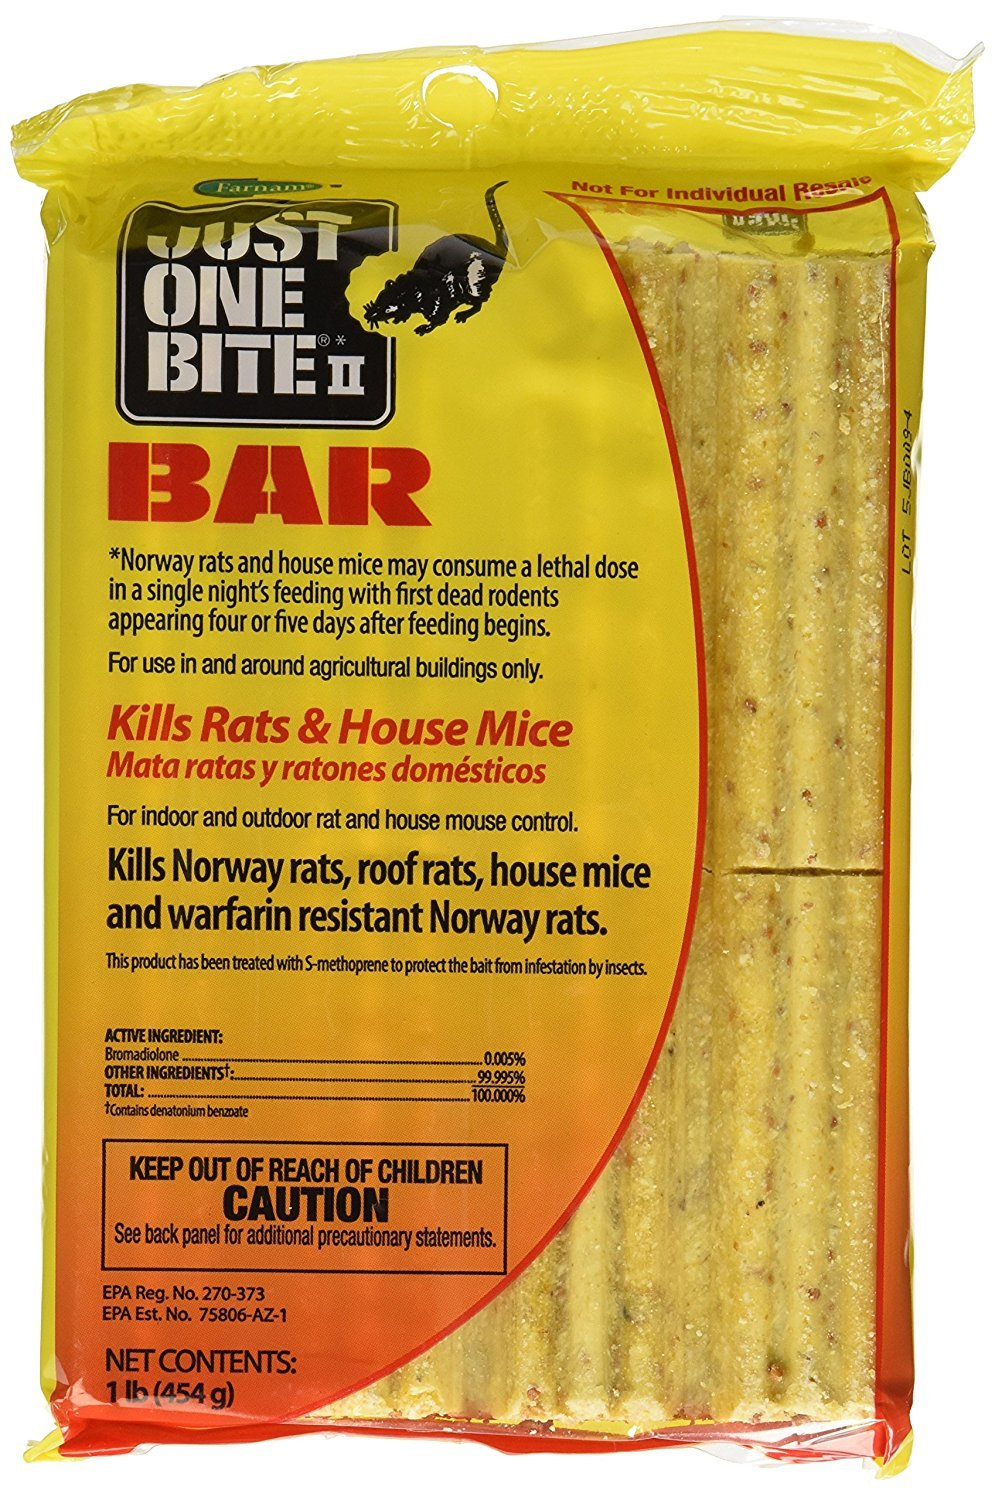 Old Cobblers Farnam Just One Bite 16oz. Bait Bar - Pack of 8 by Old Cobblers Farm ,